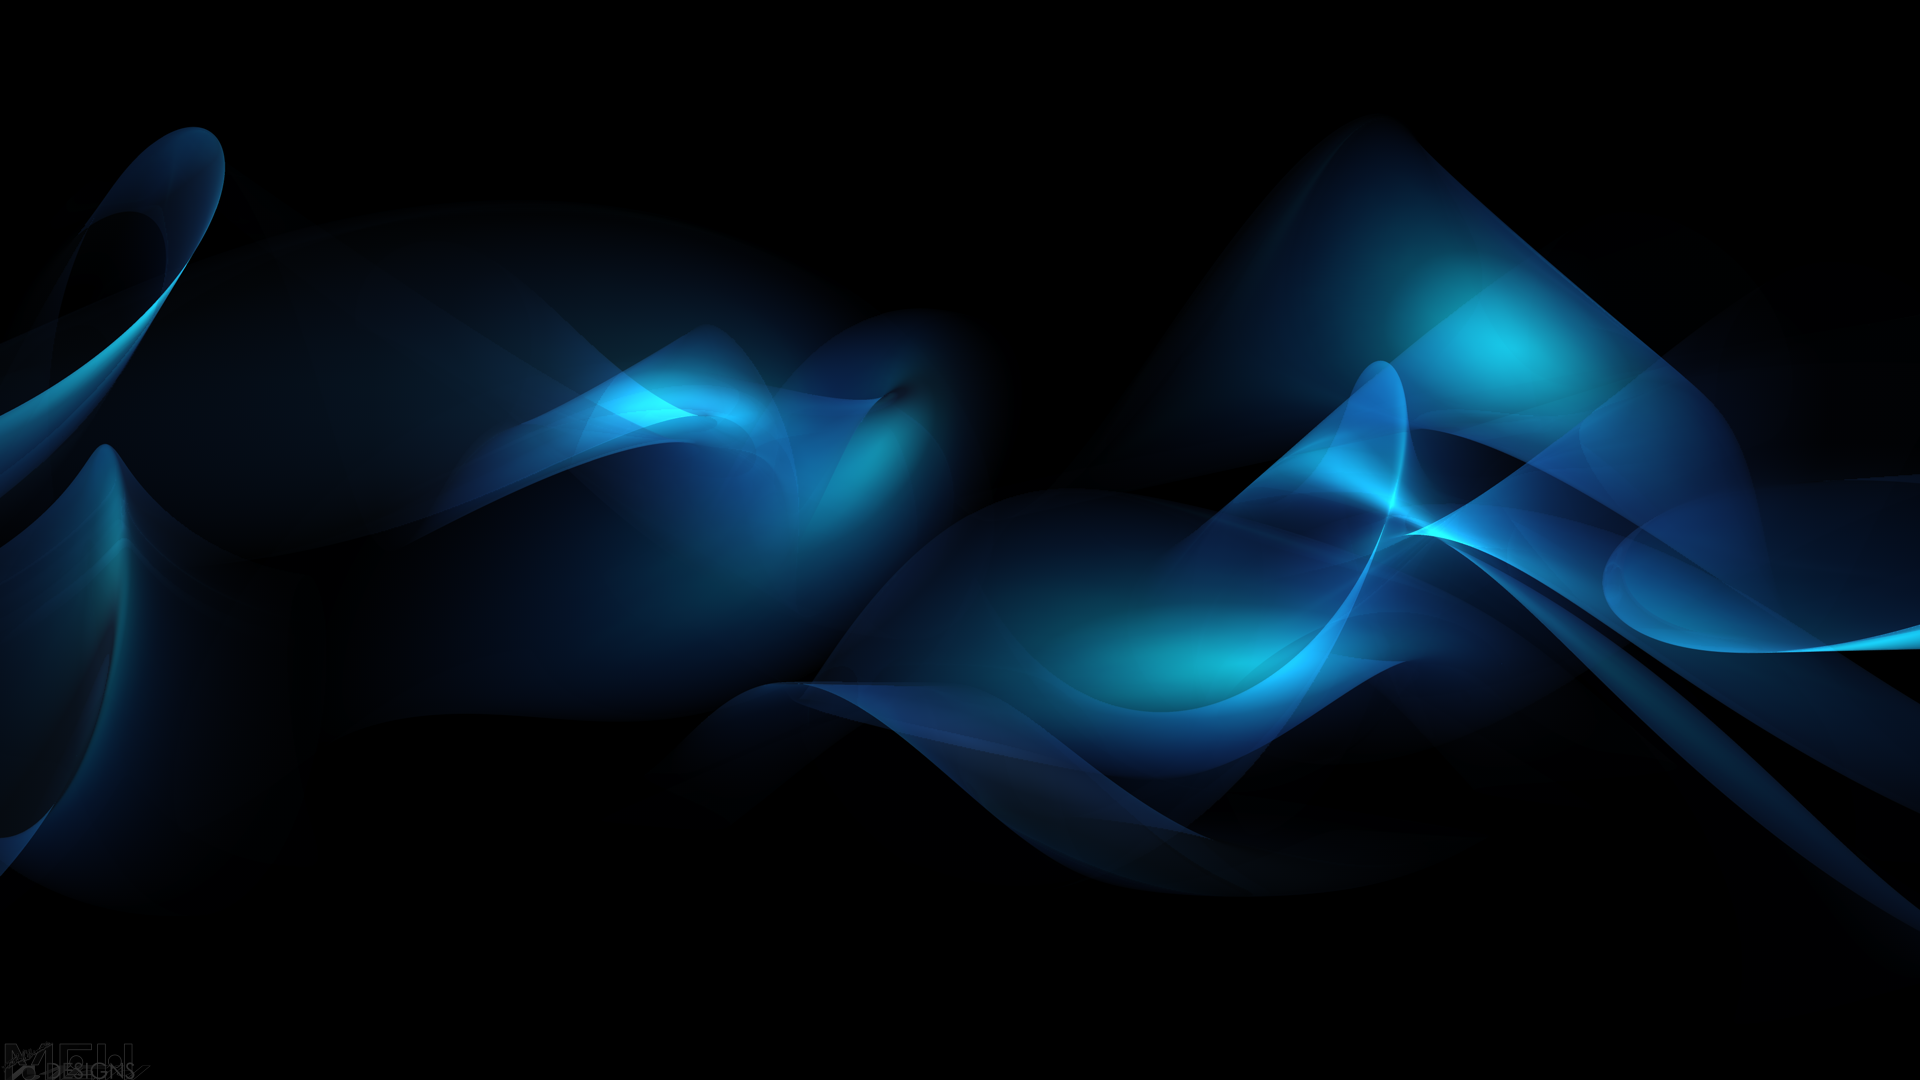 Blue Abstract Wallpaper 1080P Background 1 HD Wallpapers lzamgs 1920x1080